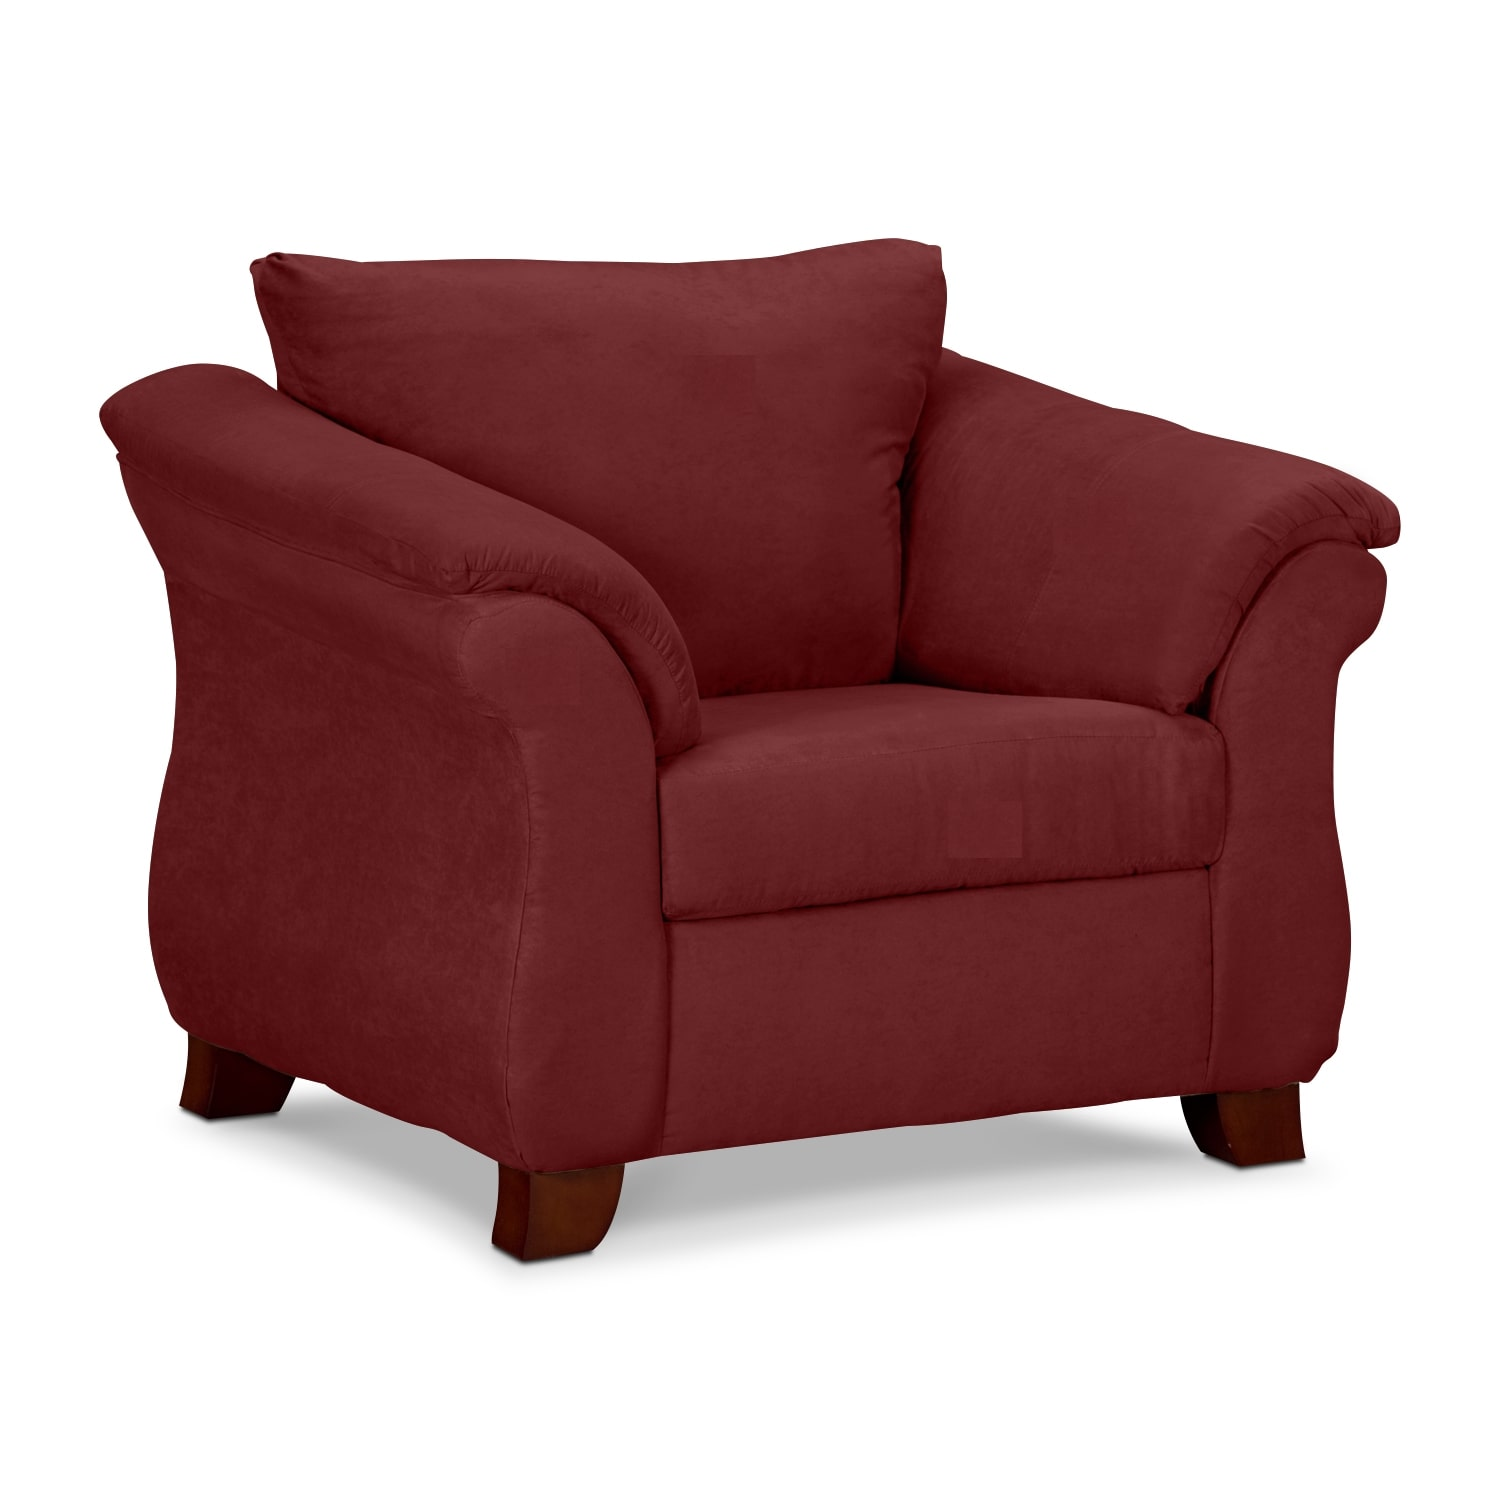 [Adrian Red Chair]